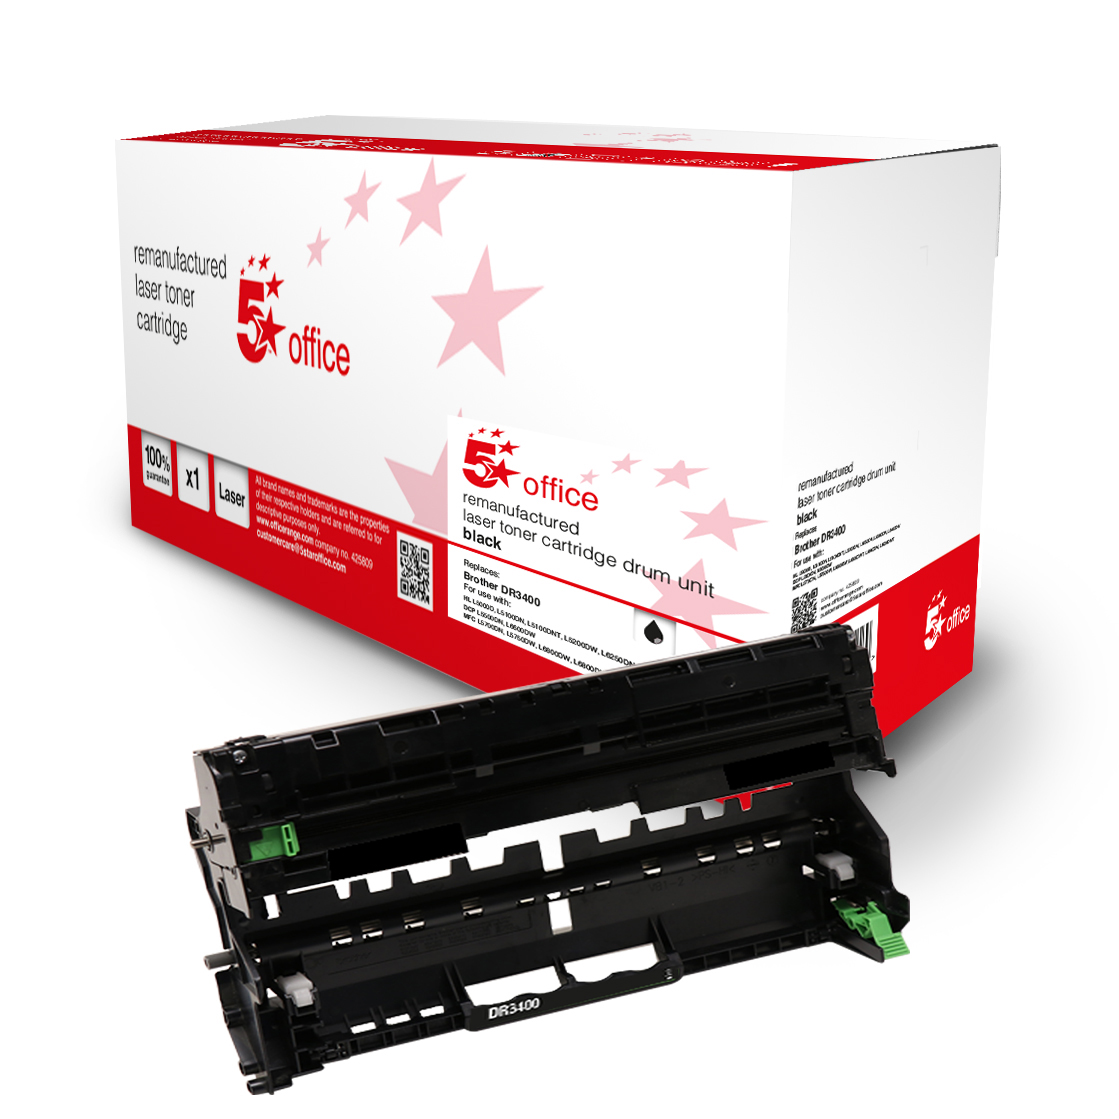 Laser Toner Cartridges 5 Star Office Remanufactured Laser Drum Page Life Black 50000pp Brother DR3400 Alternative